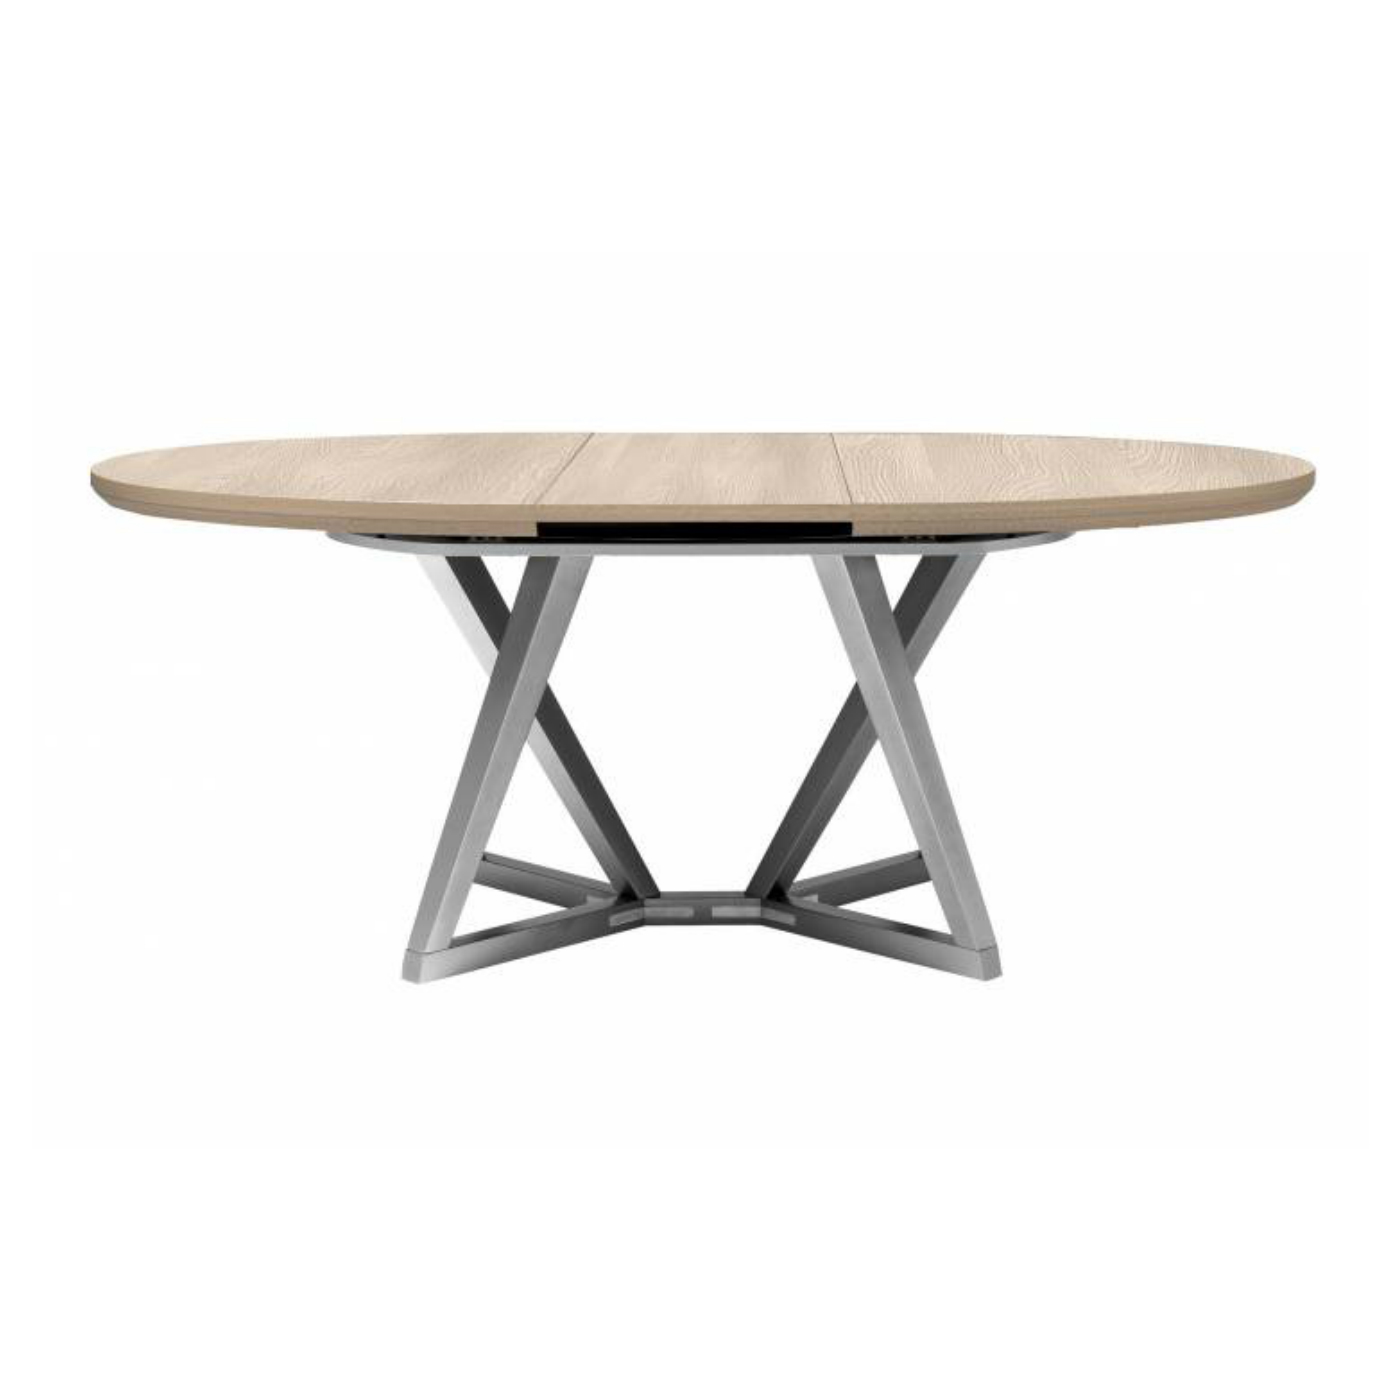 Gx Setis Oval Extendable Dining Table Natural Oak Top